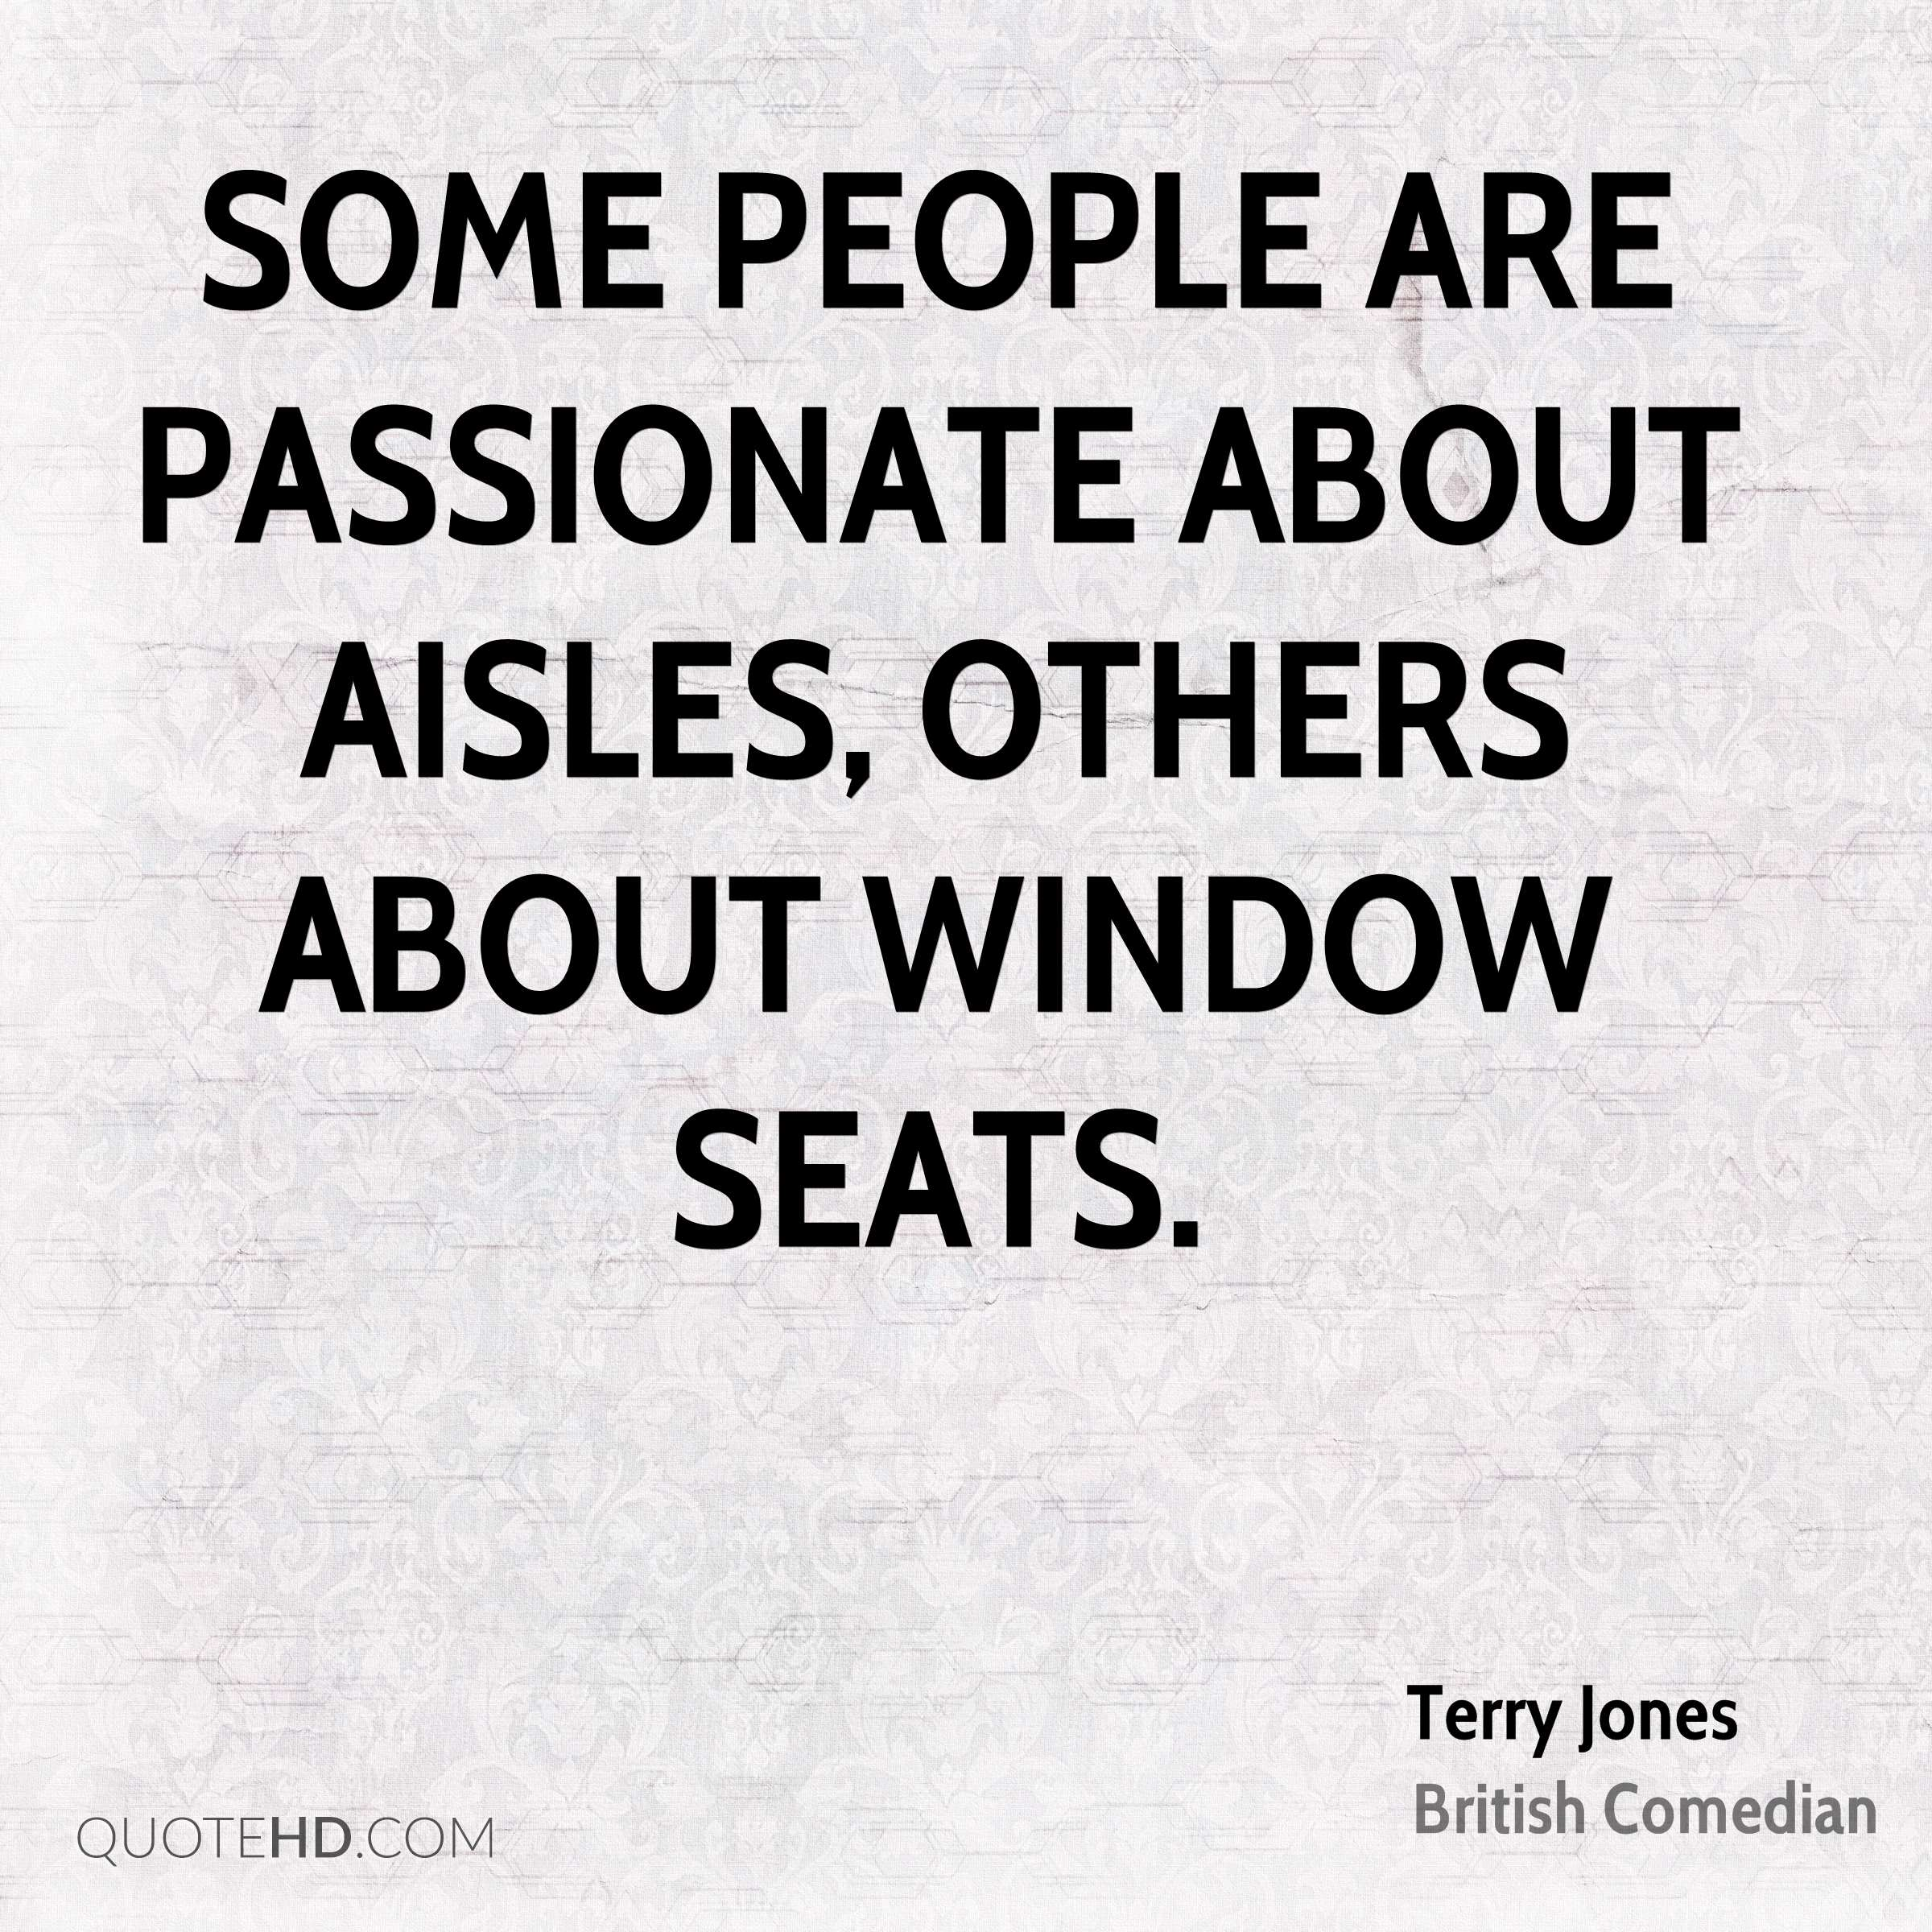 Some people are passionate about aisles, others about window seats.